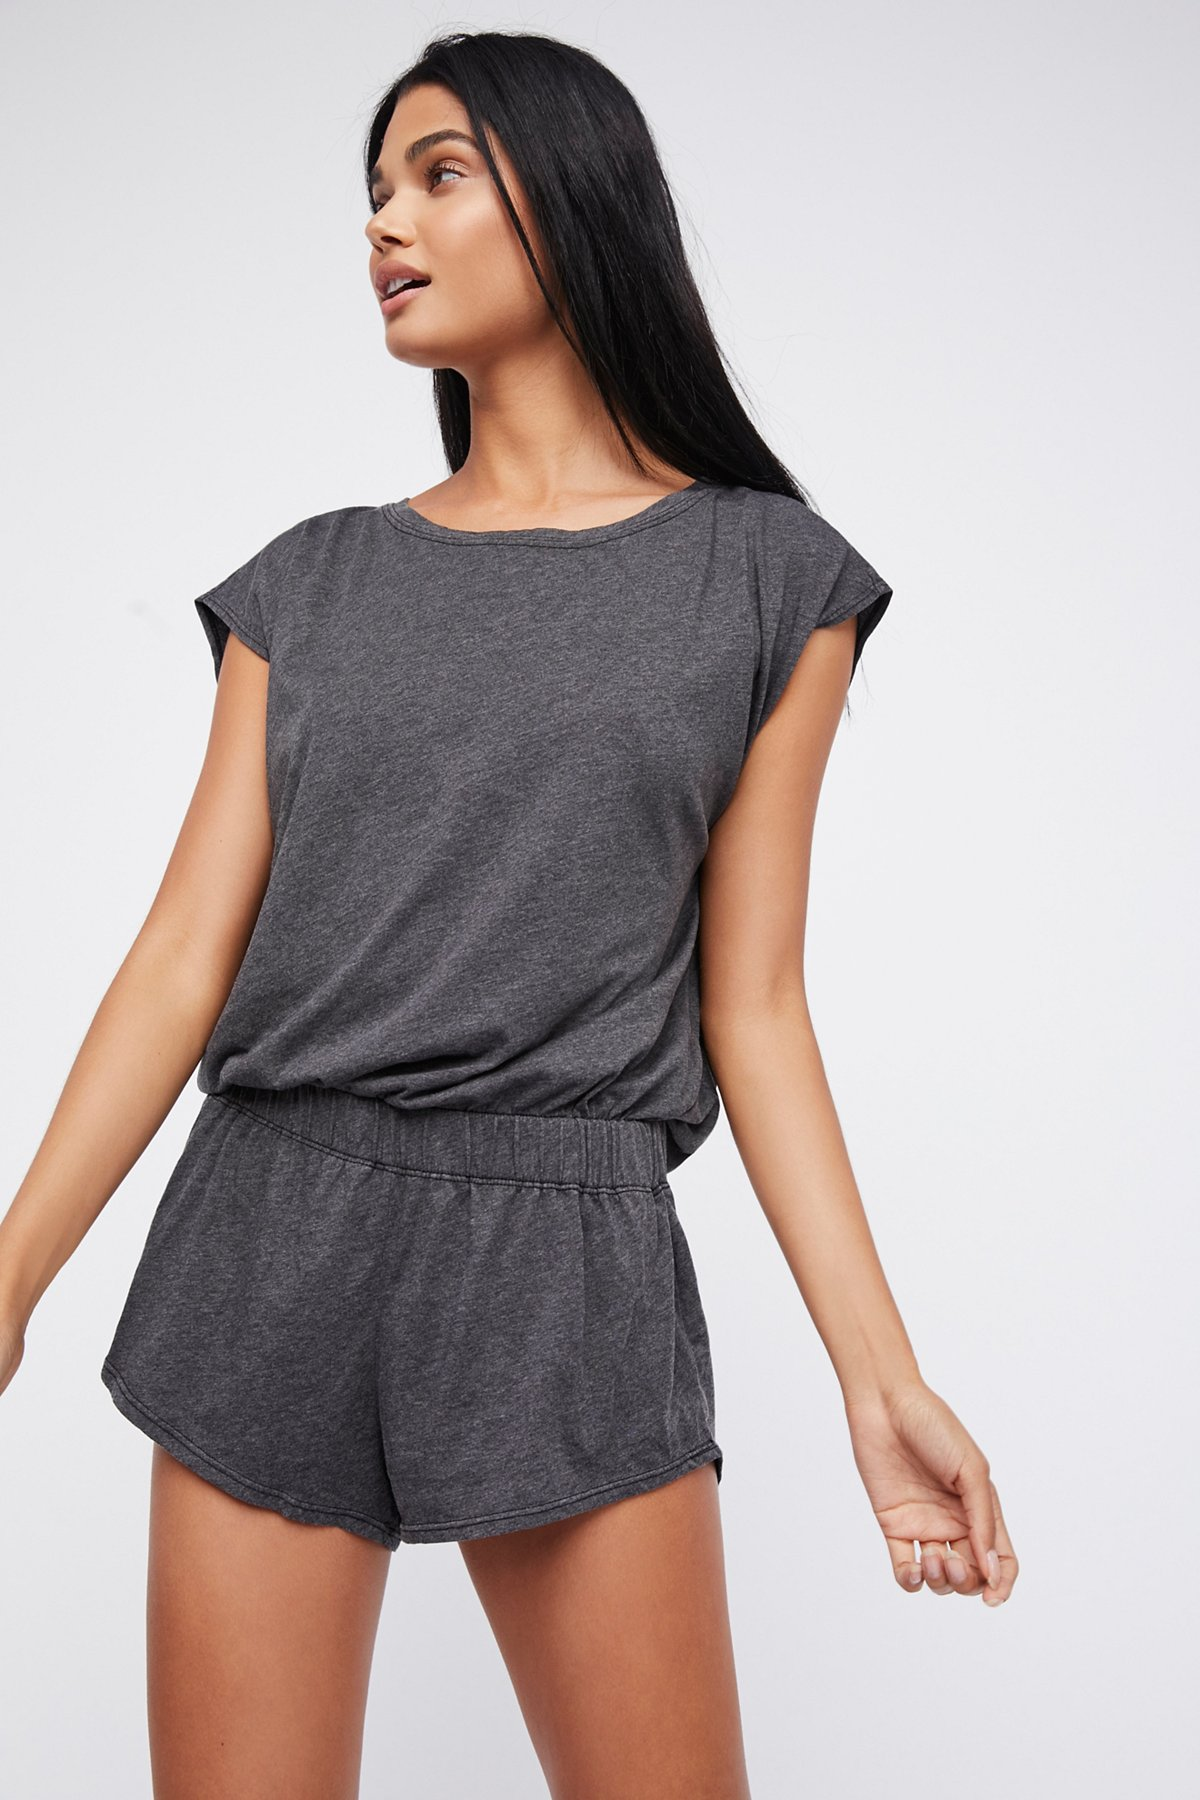 South Bay Playsuit